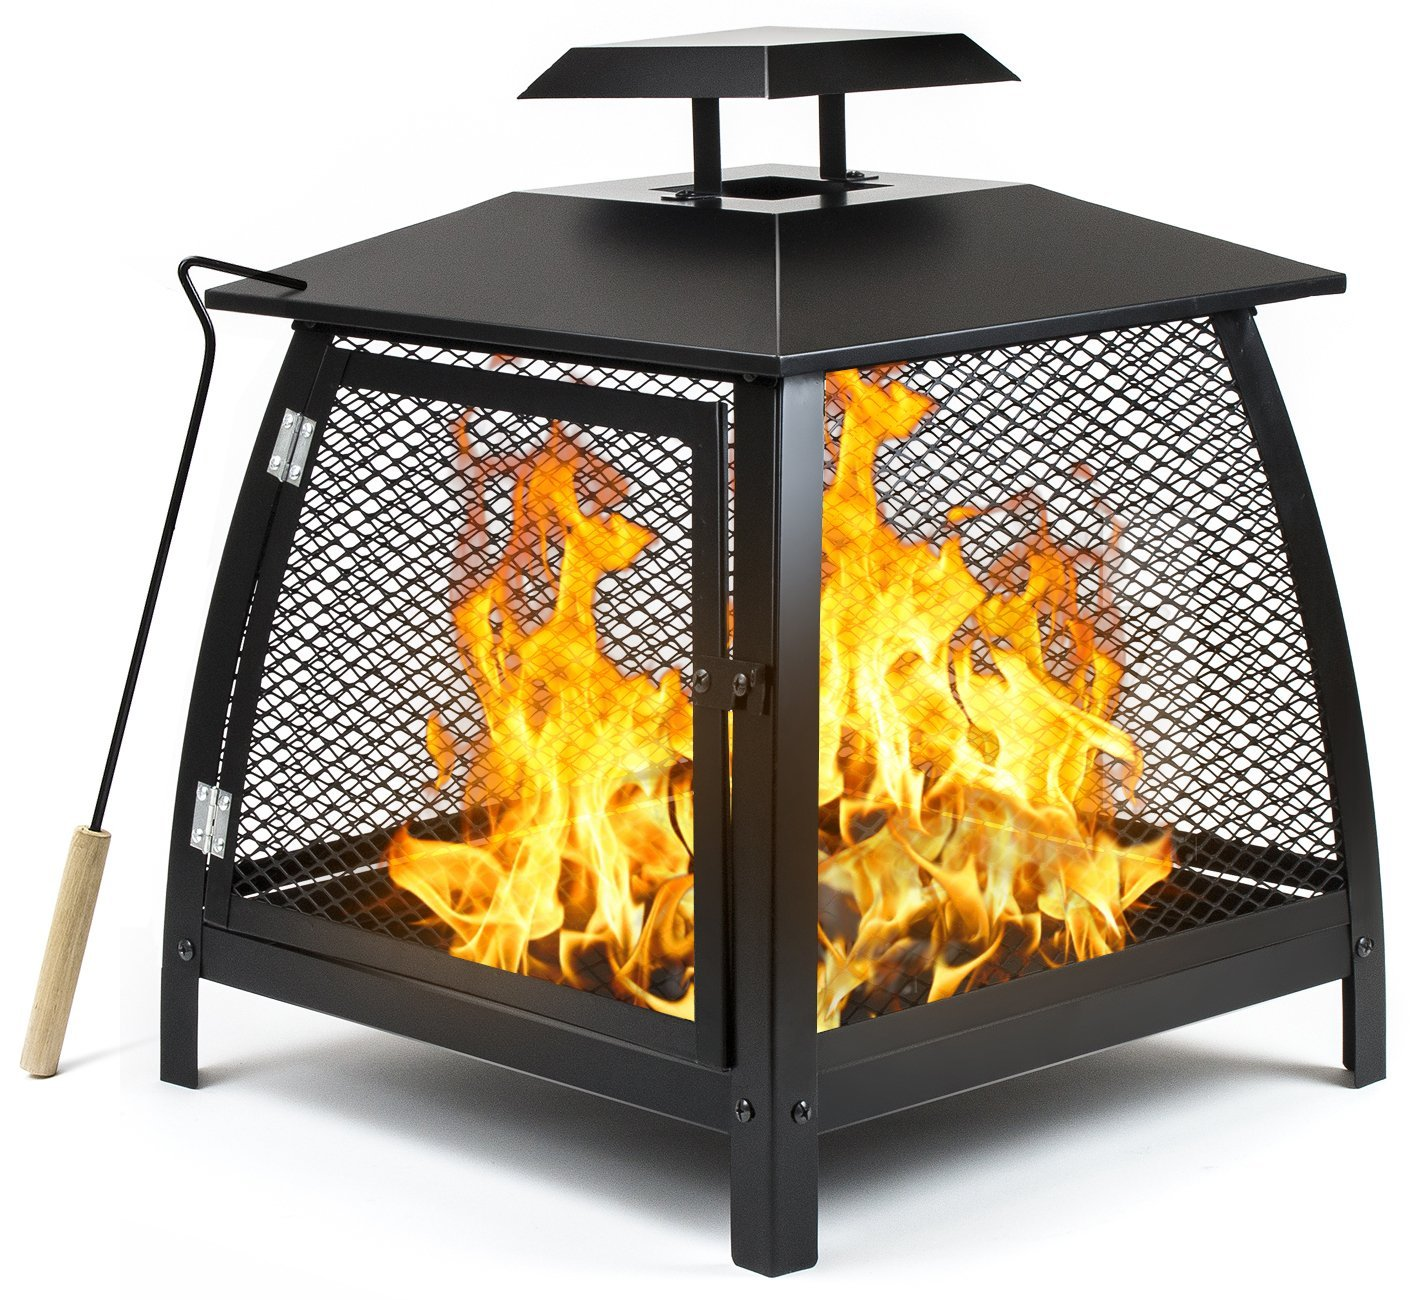 Sorbus Fire Pit Basket with Door and Poker Tool, Outdoor Fire Place Pit Brazier for Patio Heating or Incinerator for Garden Waste, Great for Backyard, Camping, Picnic, Bonfire, etc (Fire Pit Basket)